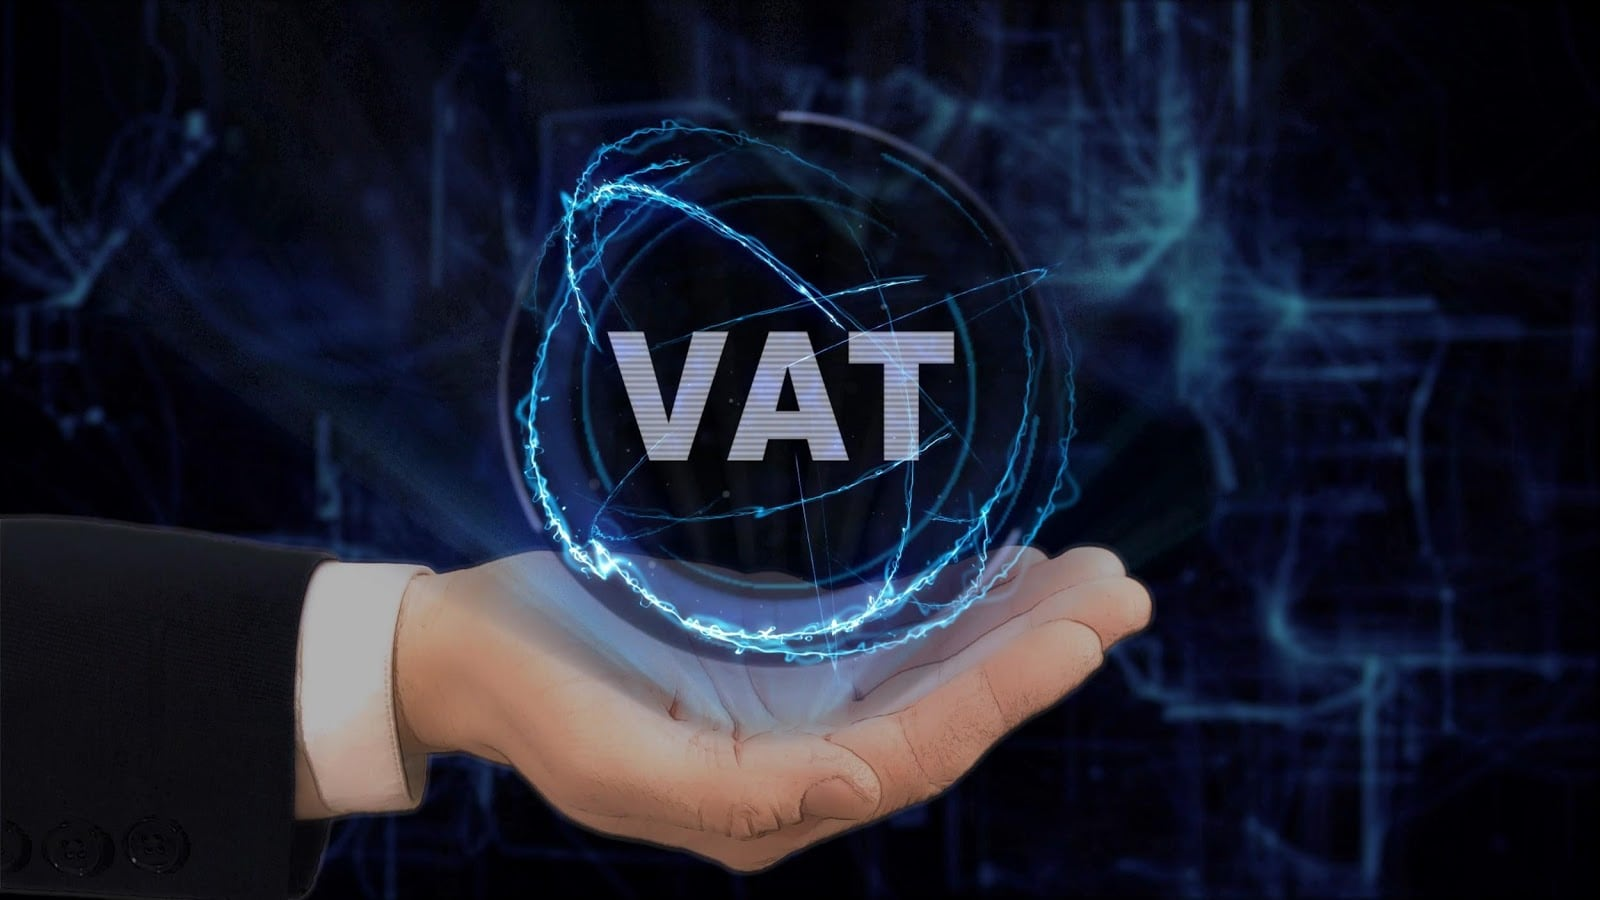 VAT on electricity and gas